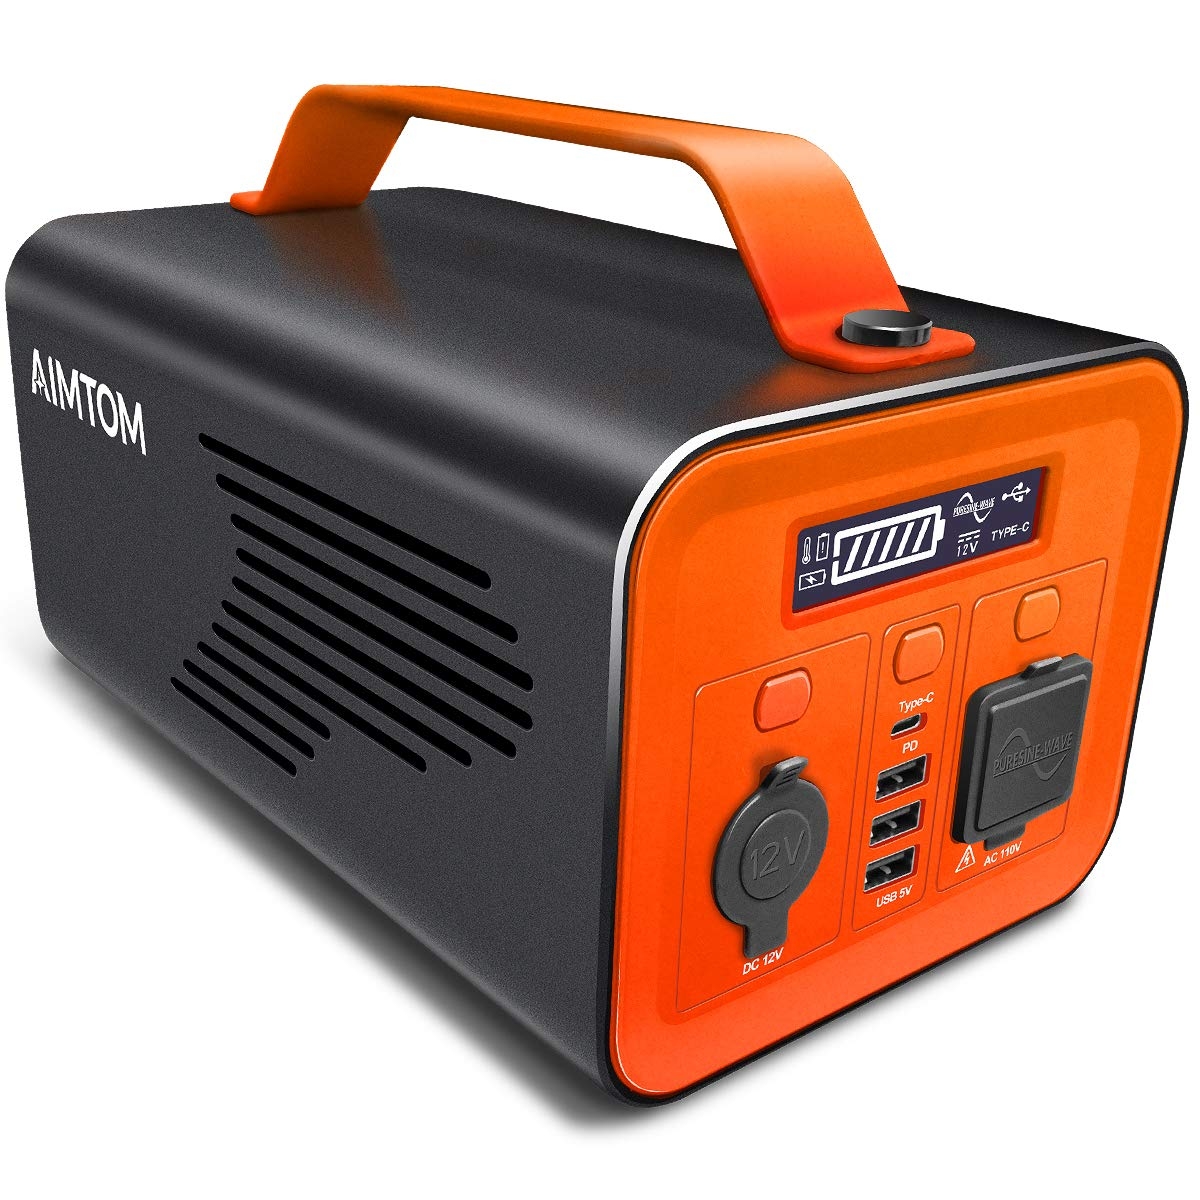 AIMTOM 230Wh Portable Power Station, Solar Rechargeable Battery Pack, 110V 200W AC, 12V DC Carport, 60W USB-C Power Delivery, Pure Sine Wave Generator Alternative for Camping Travel CPAP Emergency